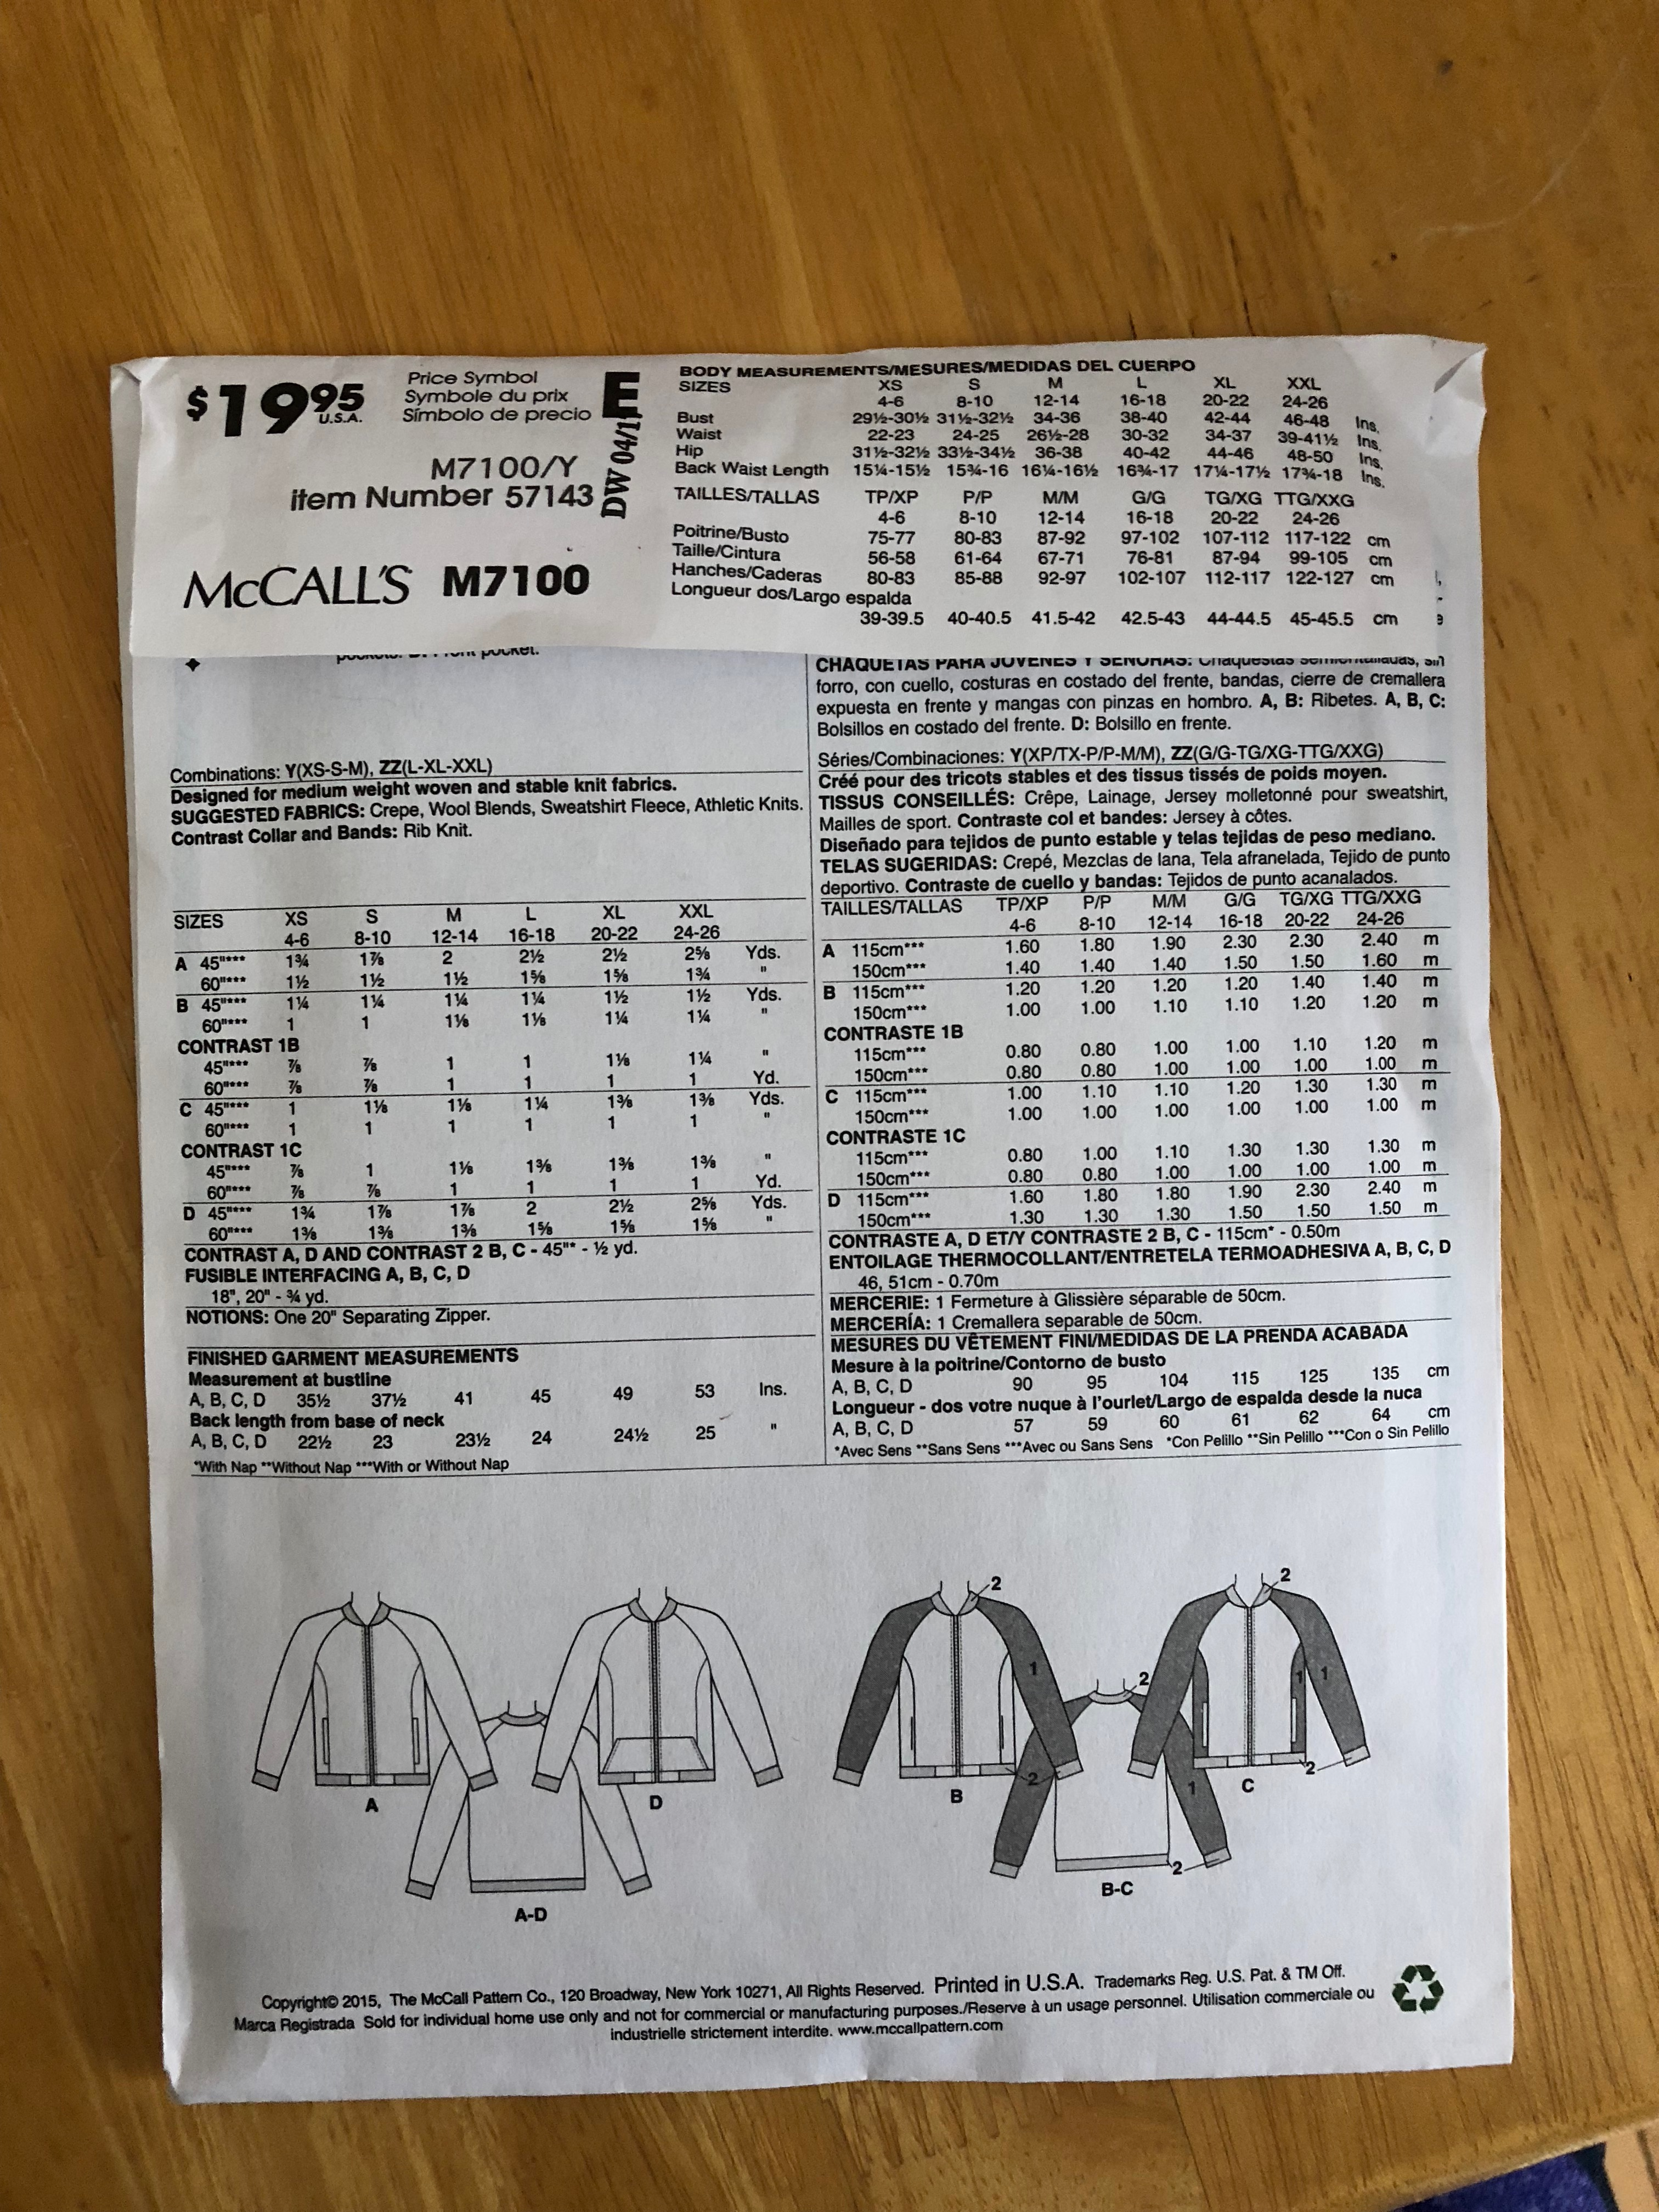 How to read a sewing pattern envelope|Chambraybluesblog|Chambrayblues.com